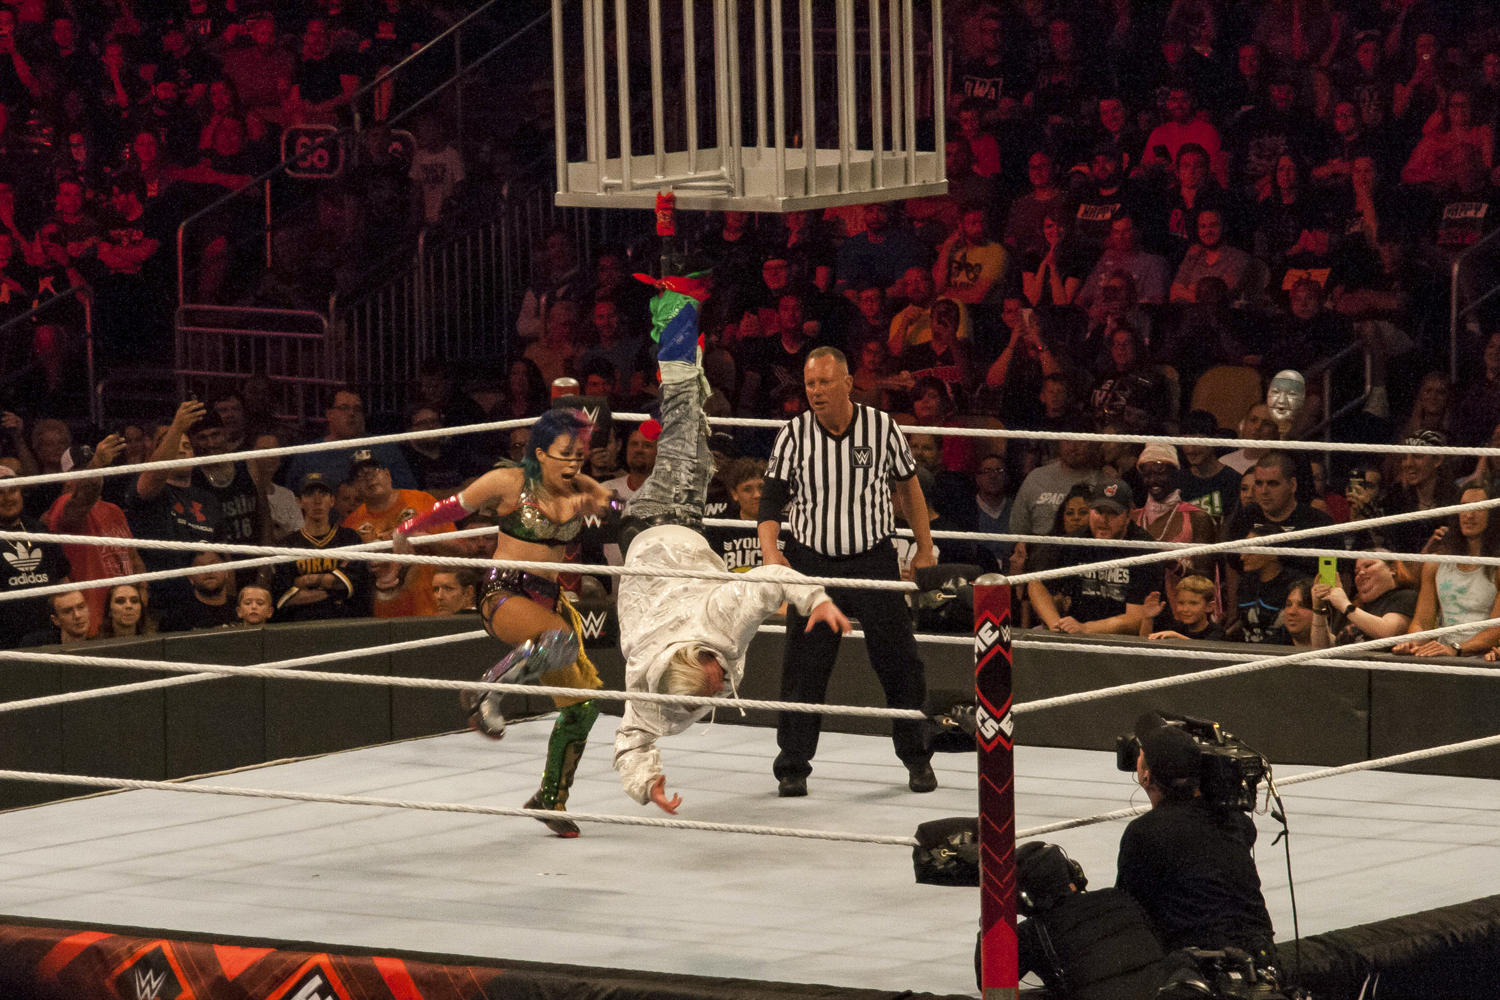 WWE pay-per-view Extreme Rules event was held at PPG Paints Arena in Pittsburgh July 15.